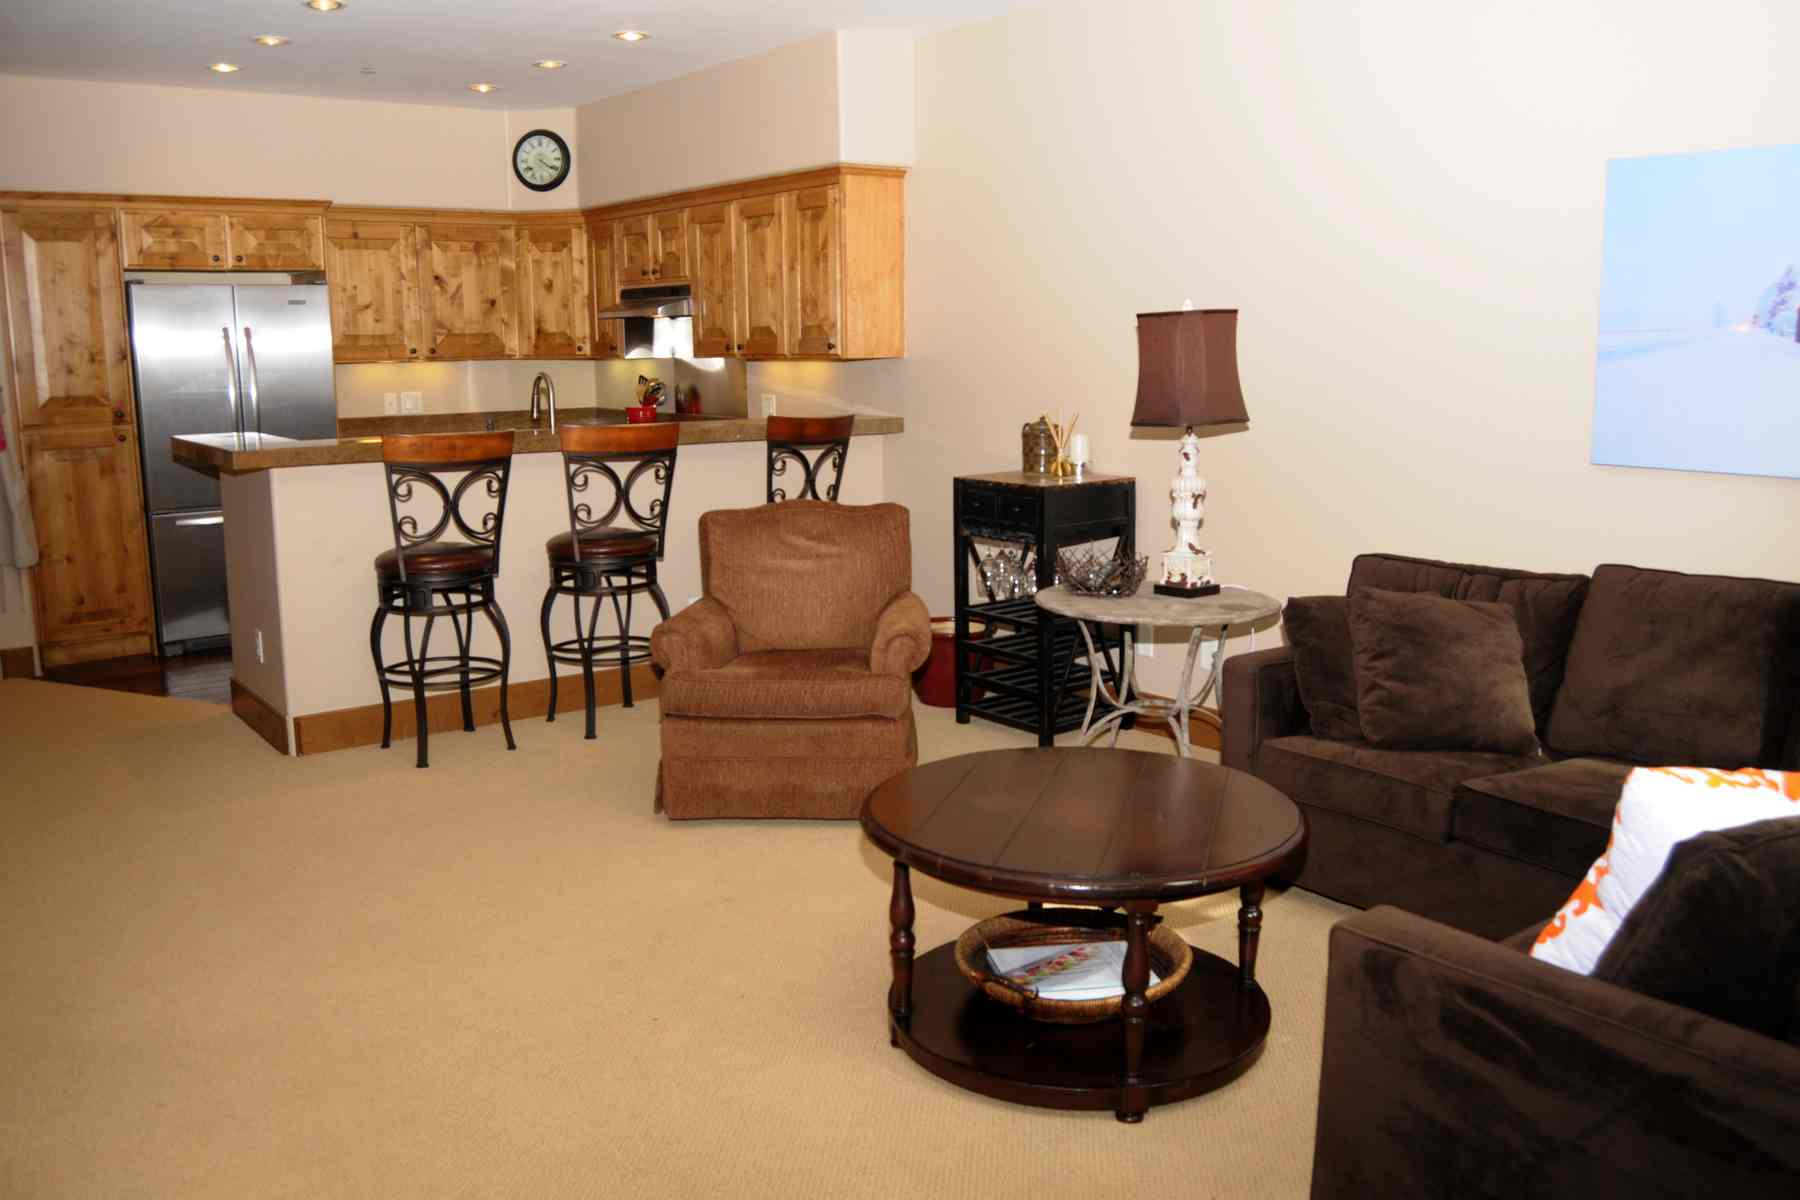 Condominium for Sale at In-Town Living 605 S. Main Street #23 Ketchum, Idaho, 83340 United States